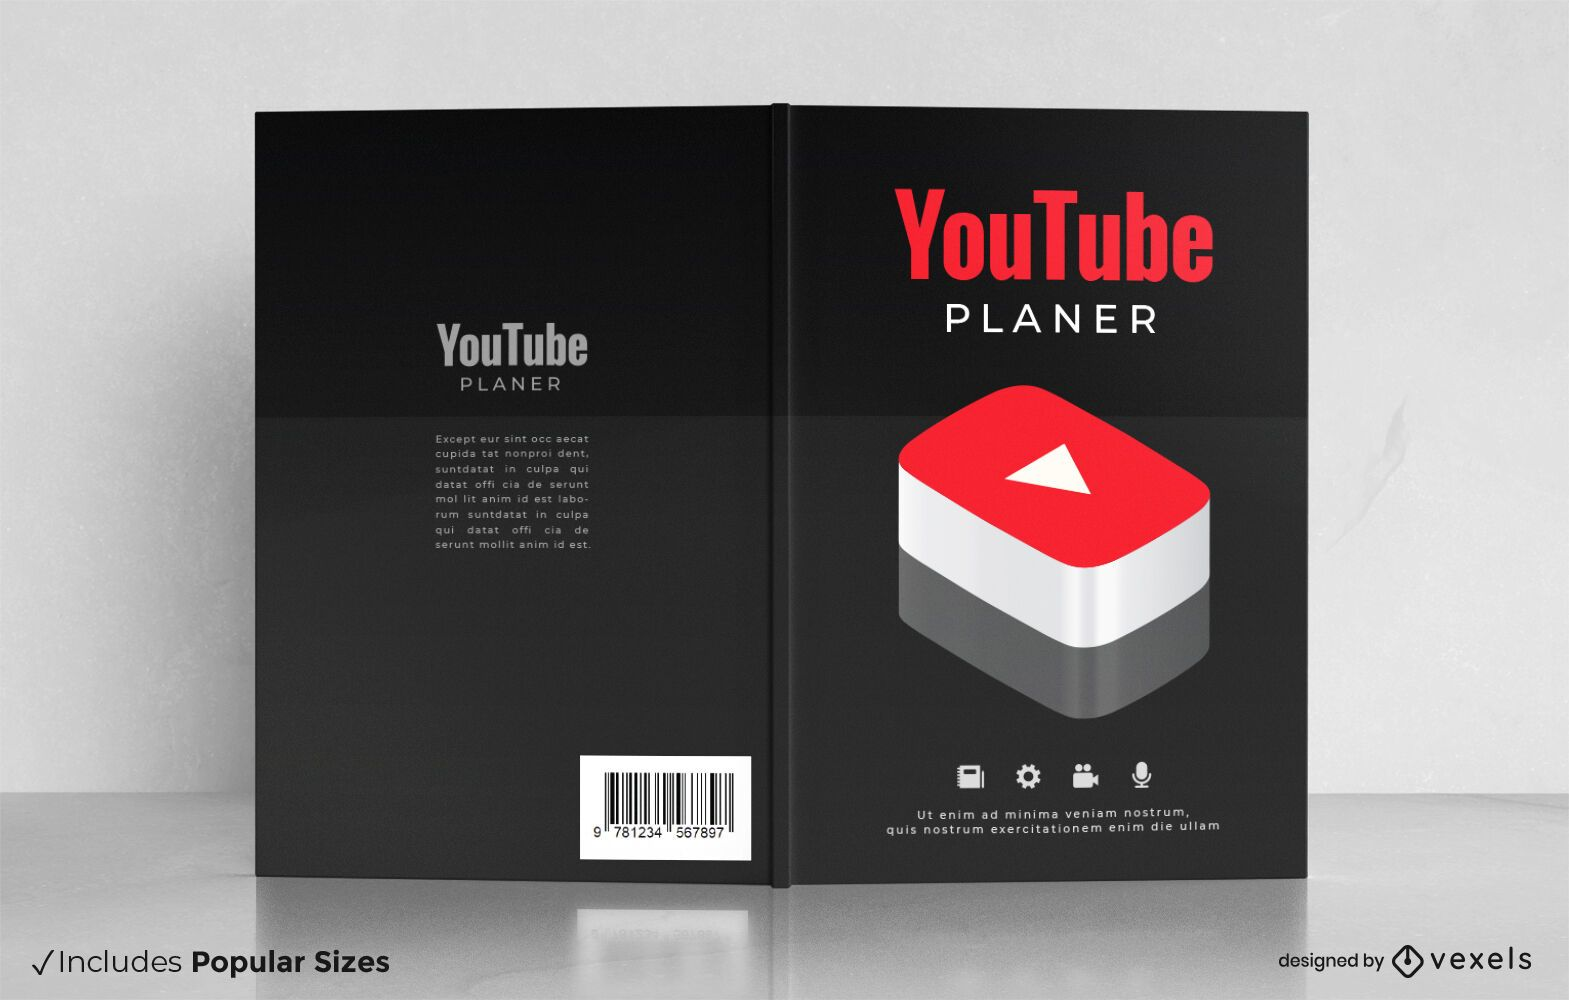 Youtube video planner book cover design